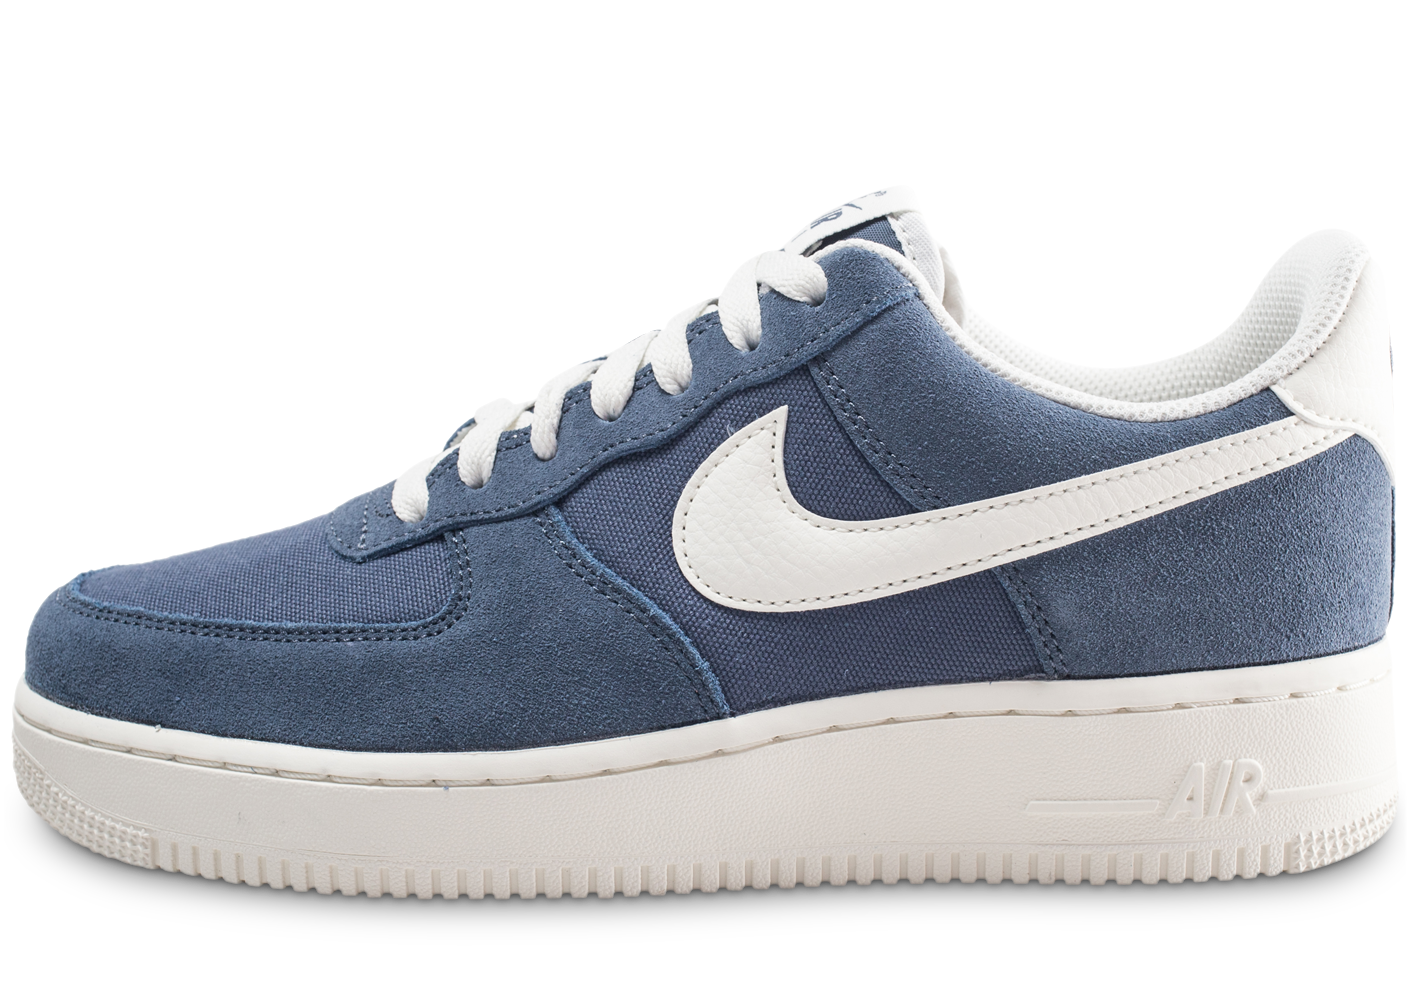 15d56c38576 Air force 1 jusqu à - 77 % - Pureshopping